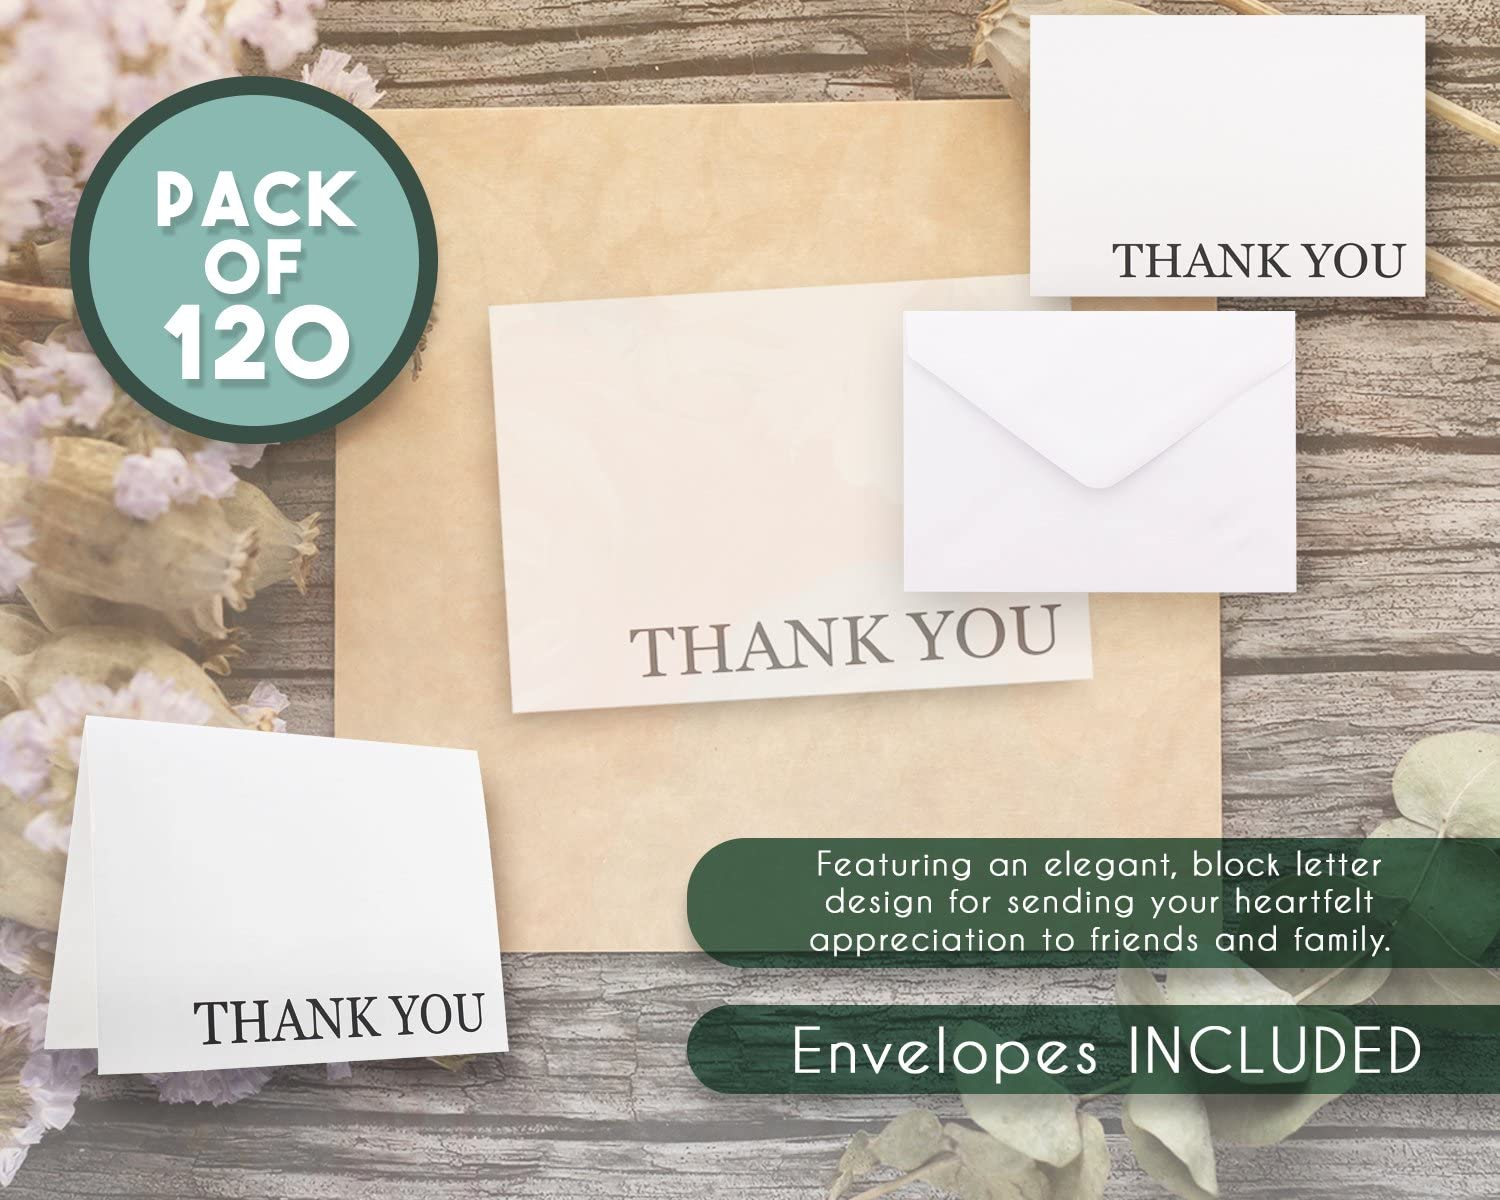 Thank You Cards Includes Thank You Cards and Envelopes Bulk Thank You Cards Set Blank on The Inside 5.125 x 3.75 Inches 120-Pack Thank You Notes White